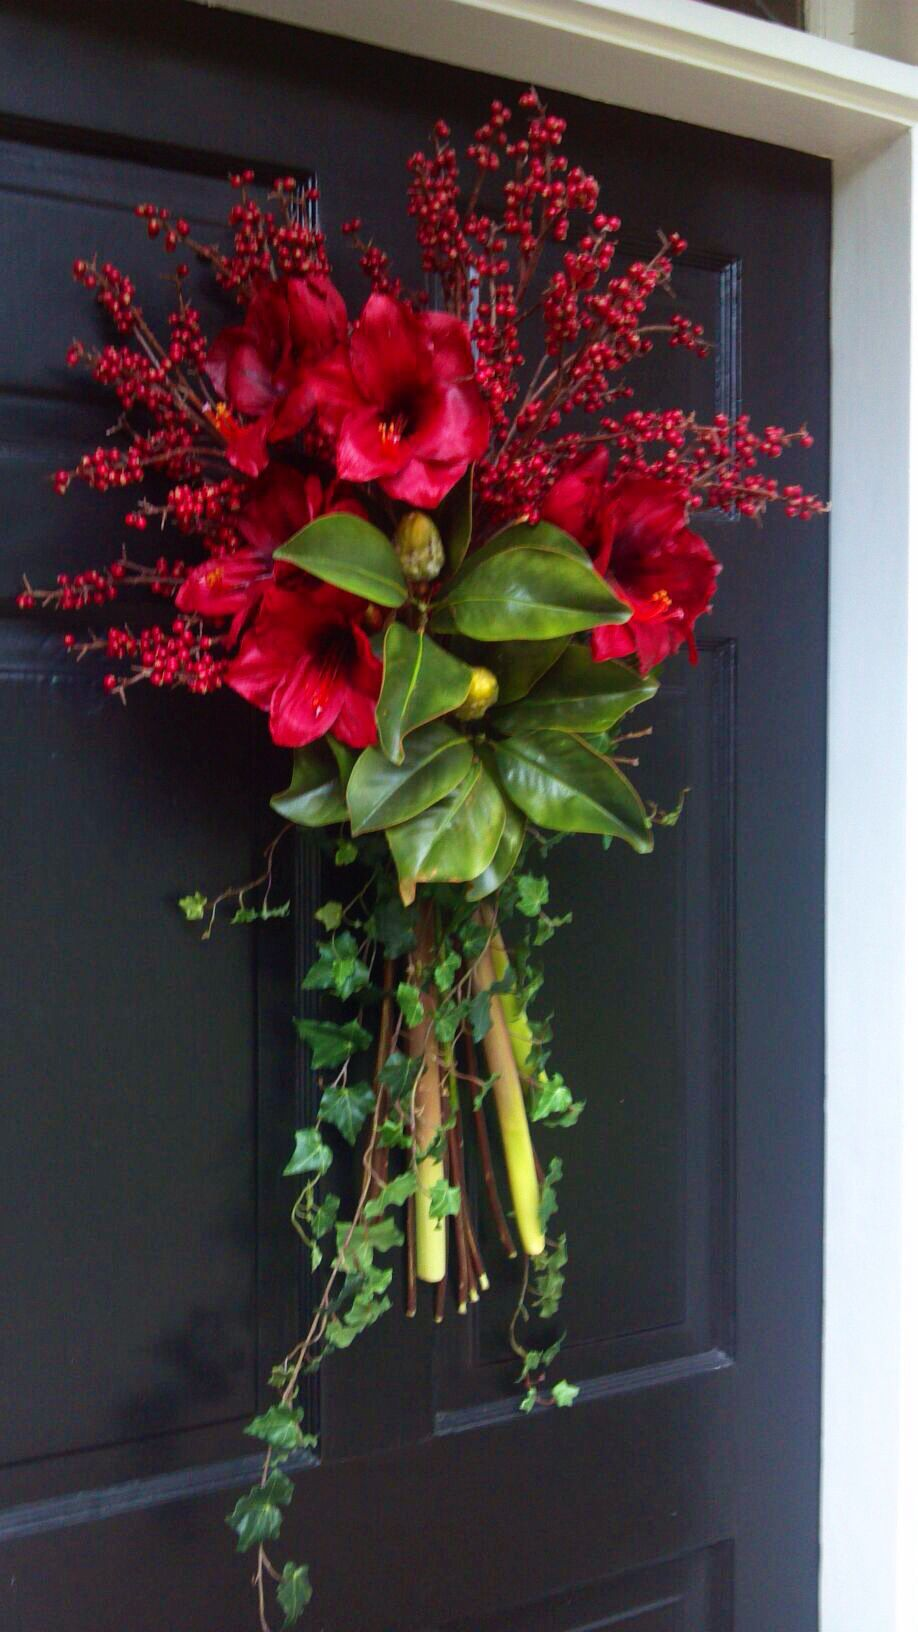 Designed by Rick Butler/ Garden District. Beautiful #Christmas front door swag. & Designed by Rick Butler/ Garden District. Beautiful #Christmas front ...